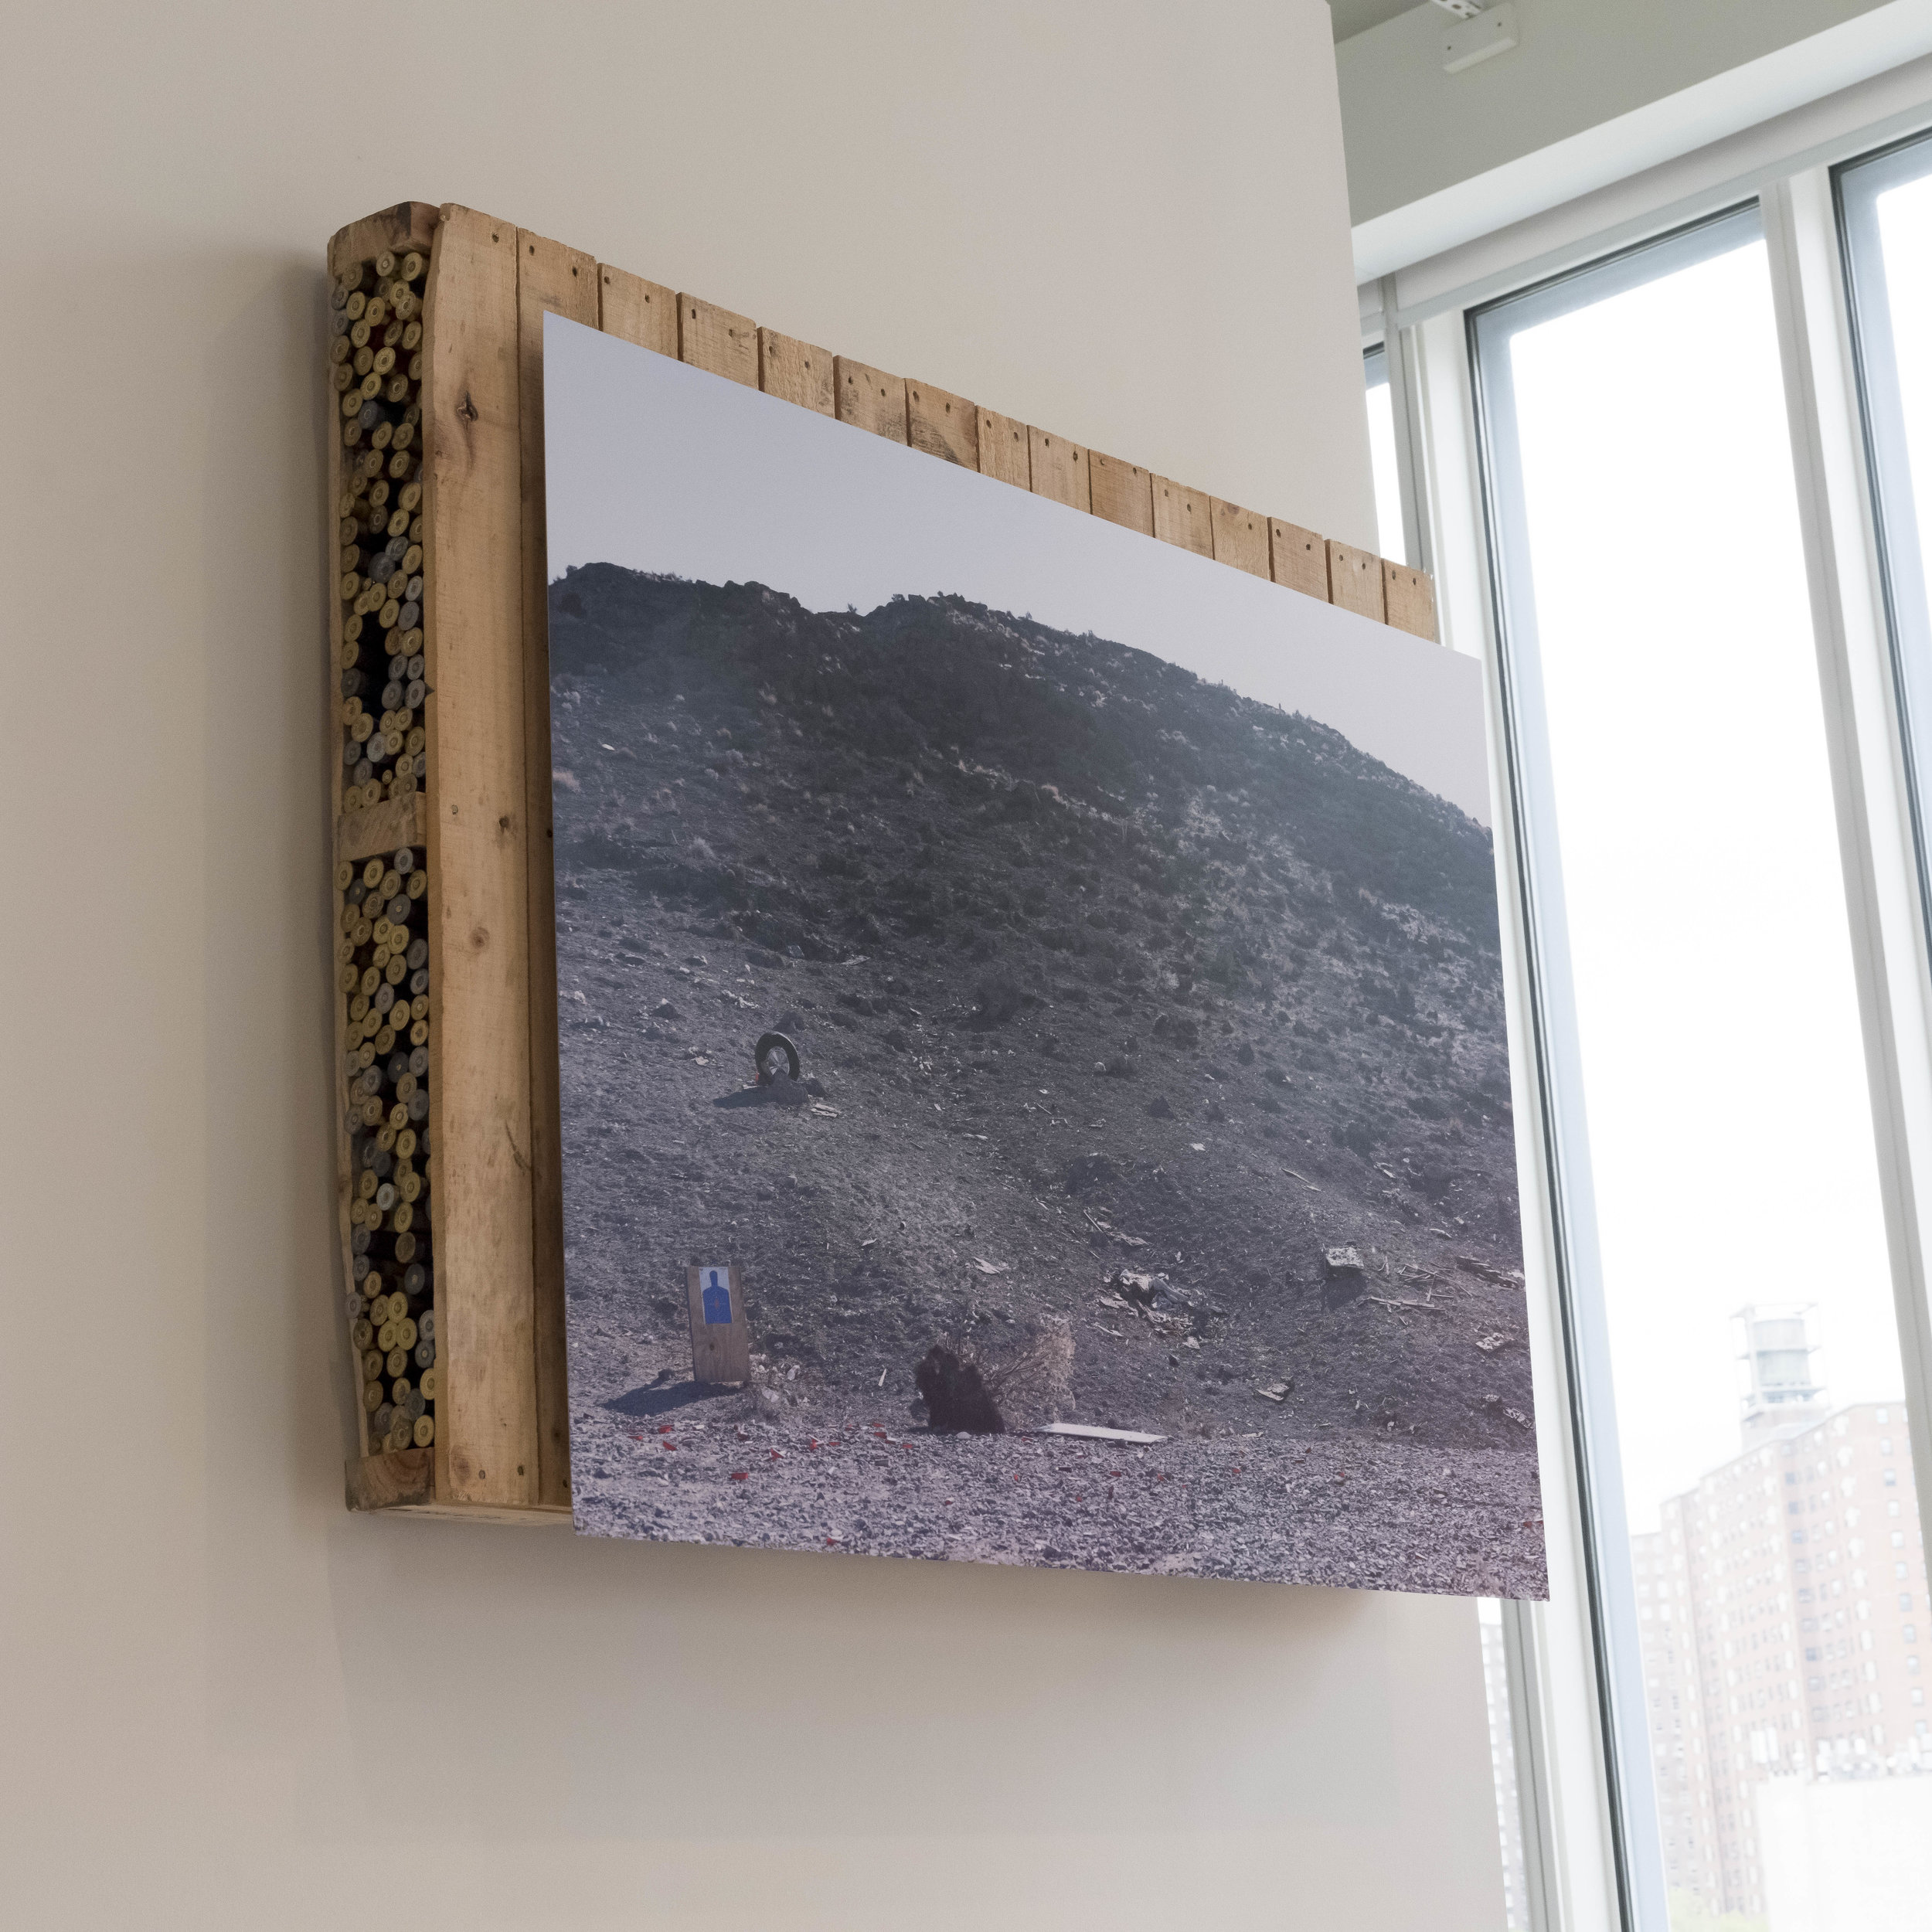 "Shooting Range #2, 36""x48"", Dye Sub Aluminum Print, mounted on pallet, with found shotgun shells from HDSP area, 2019"